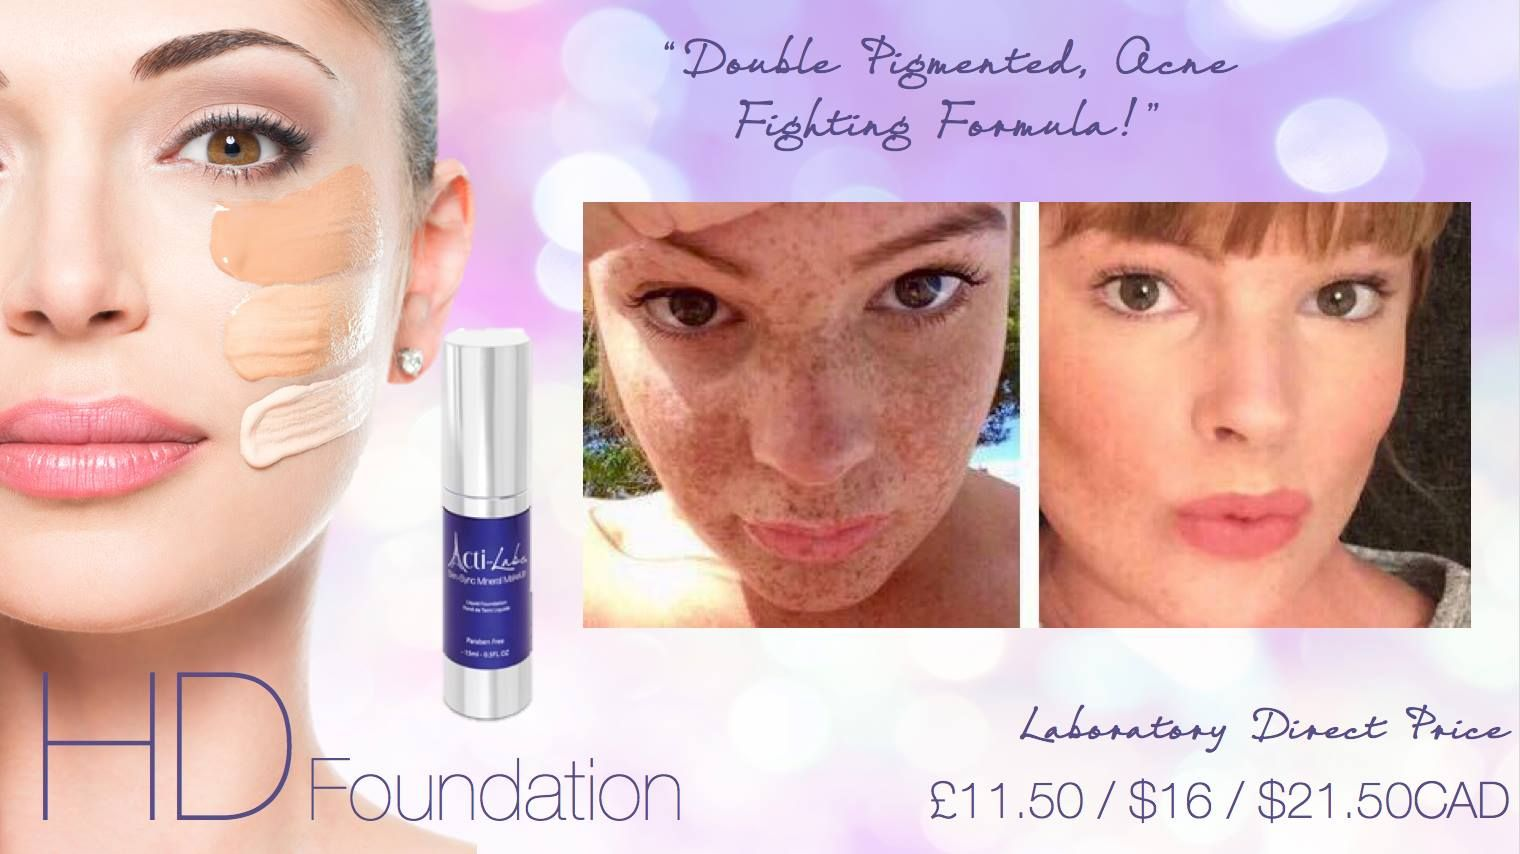 Our HD Foundation contains Green Tea, a powerful